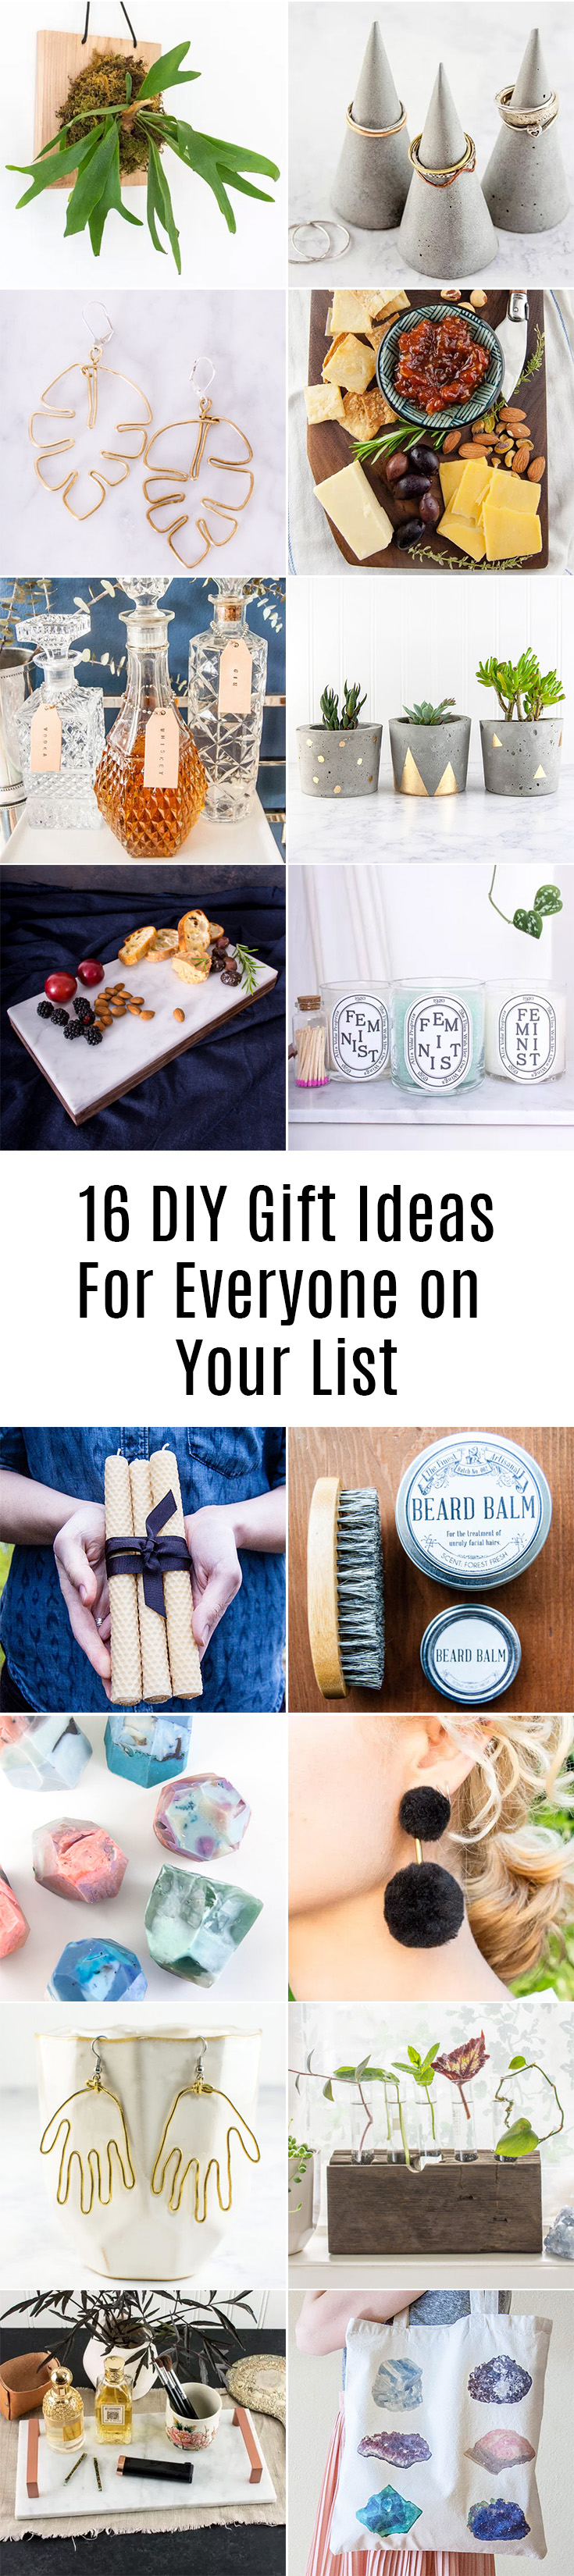 16 diy gifts ideas for everyone on your list diy in pdx want to diy your gifts this year here are 16 tutorials for gifts you can negle Images